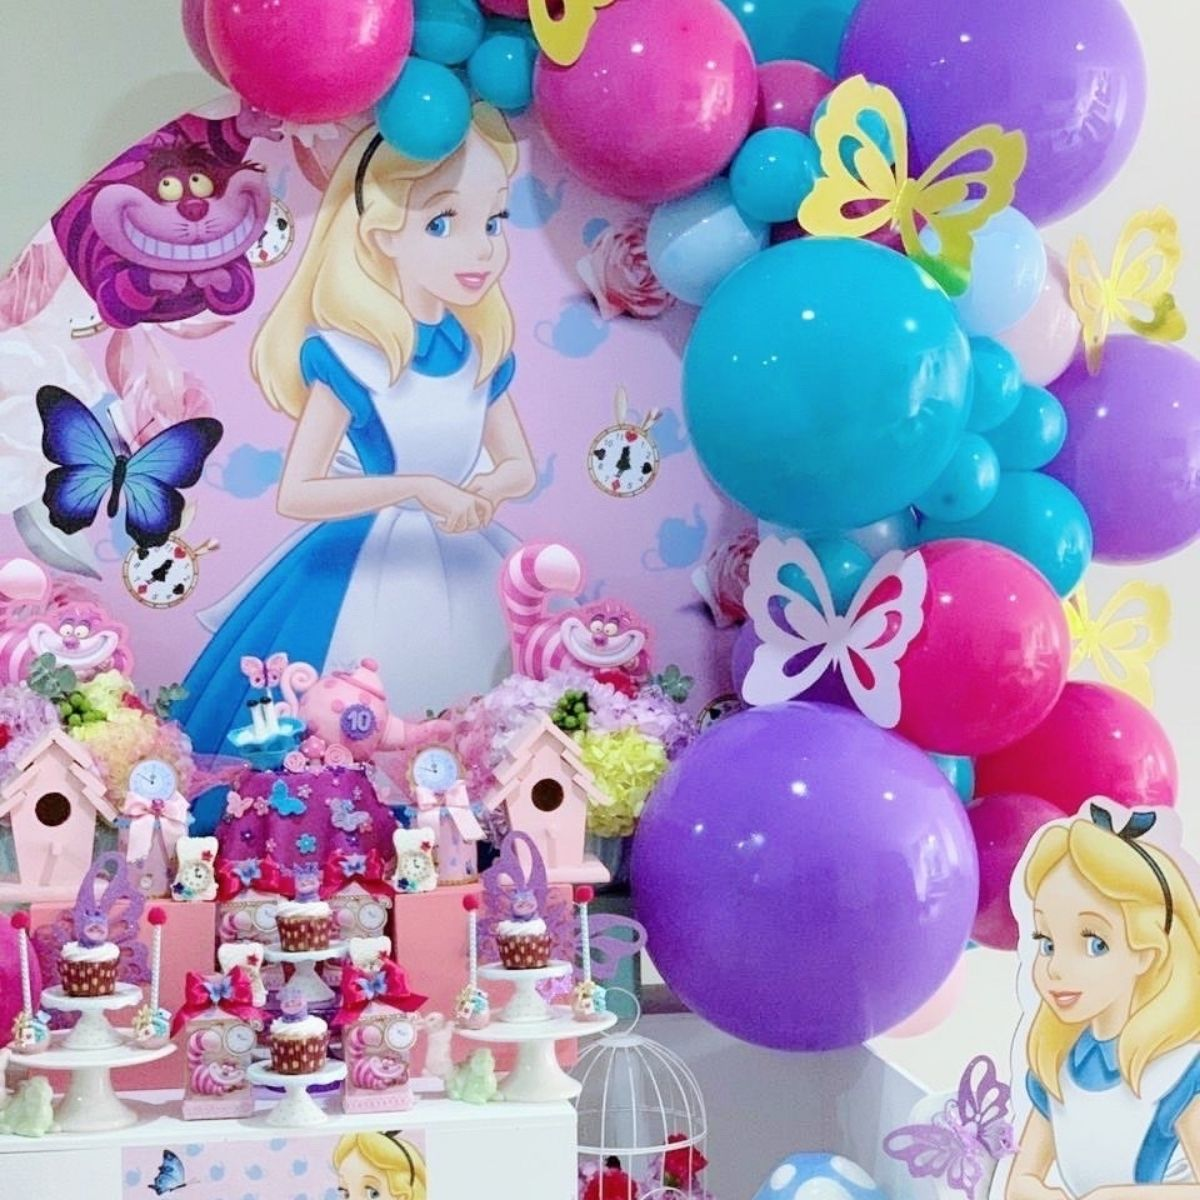 Adorable Alice in the Wonderland Birthday Party Ideas